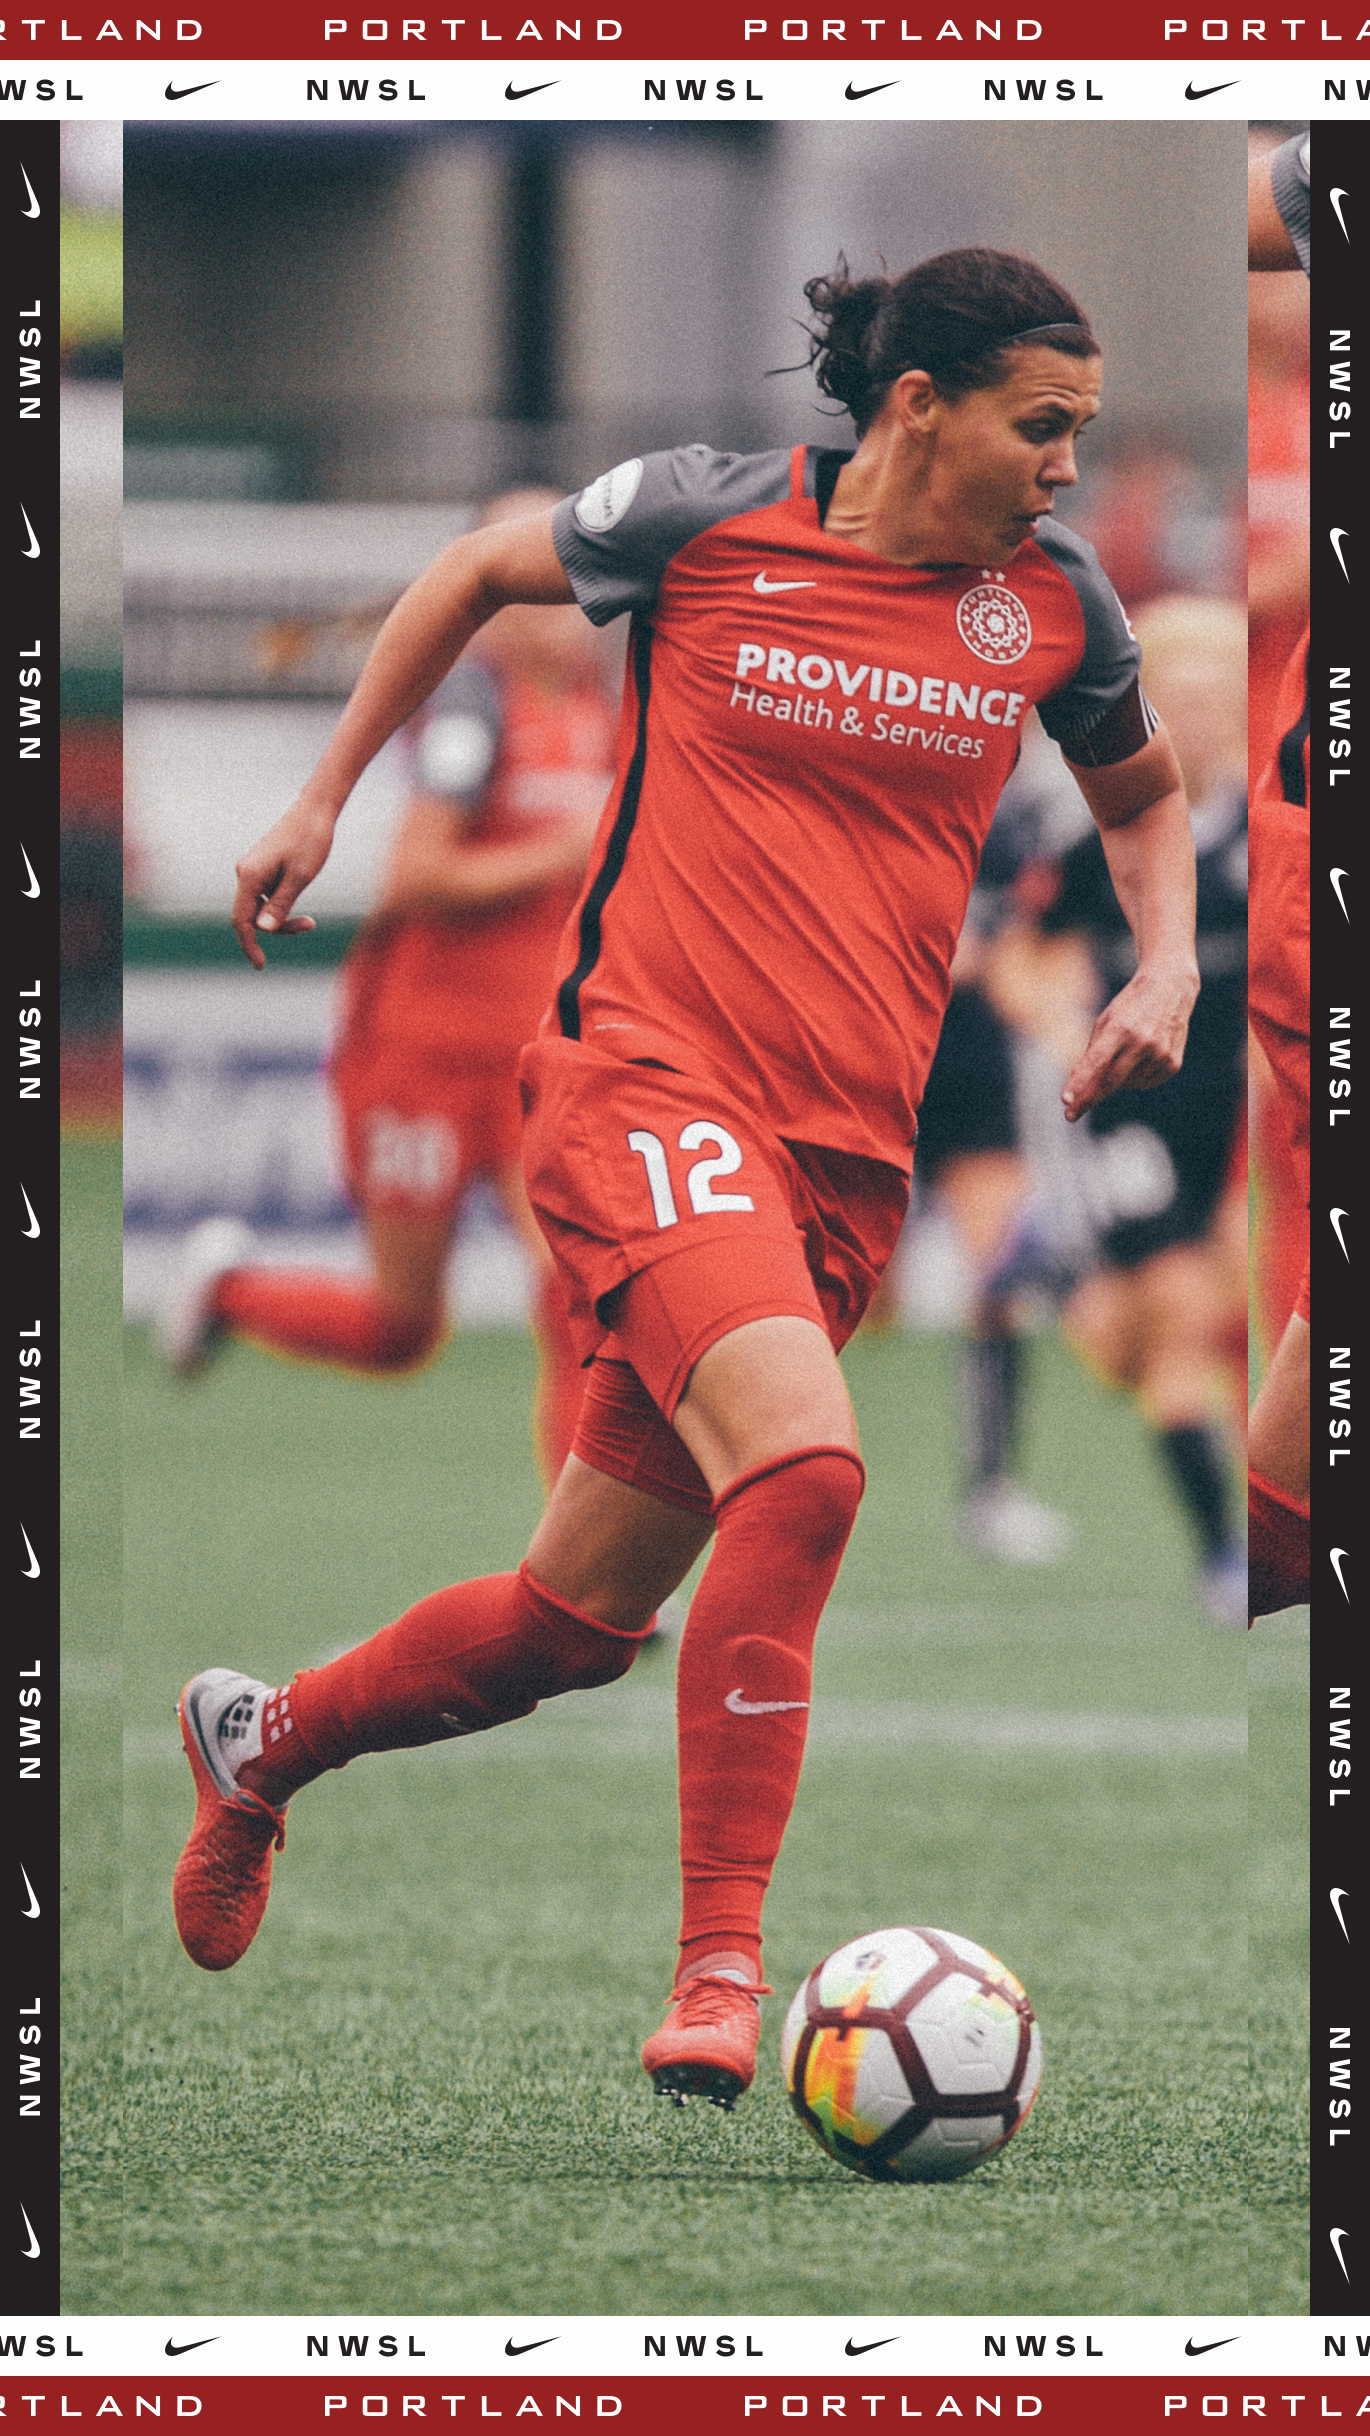 NIKE-NWSL-IG-STORY-06.png